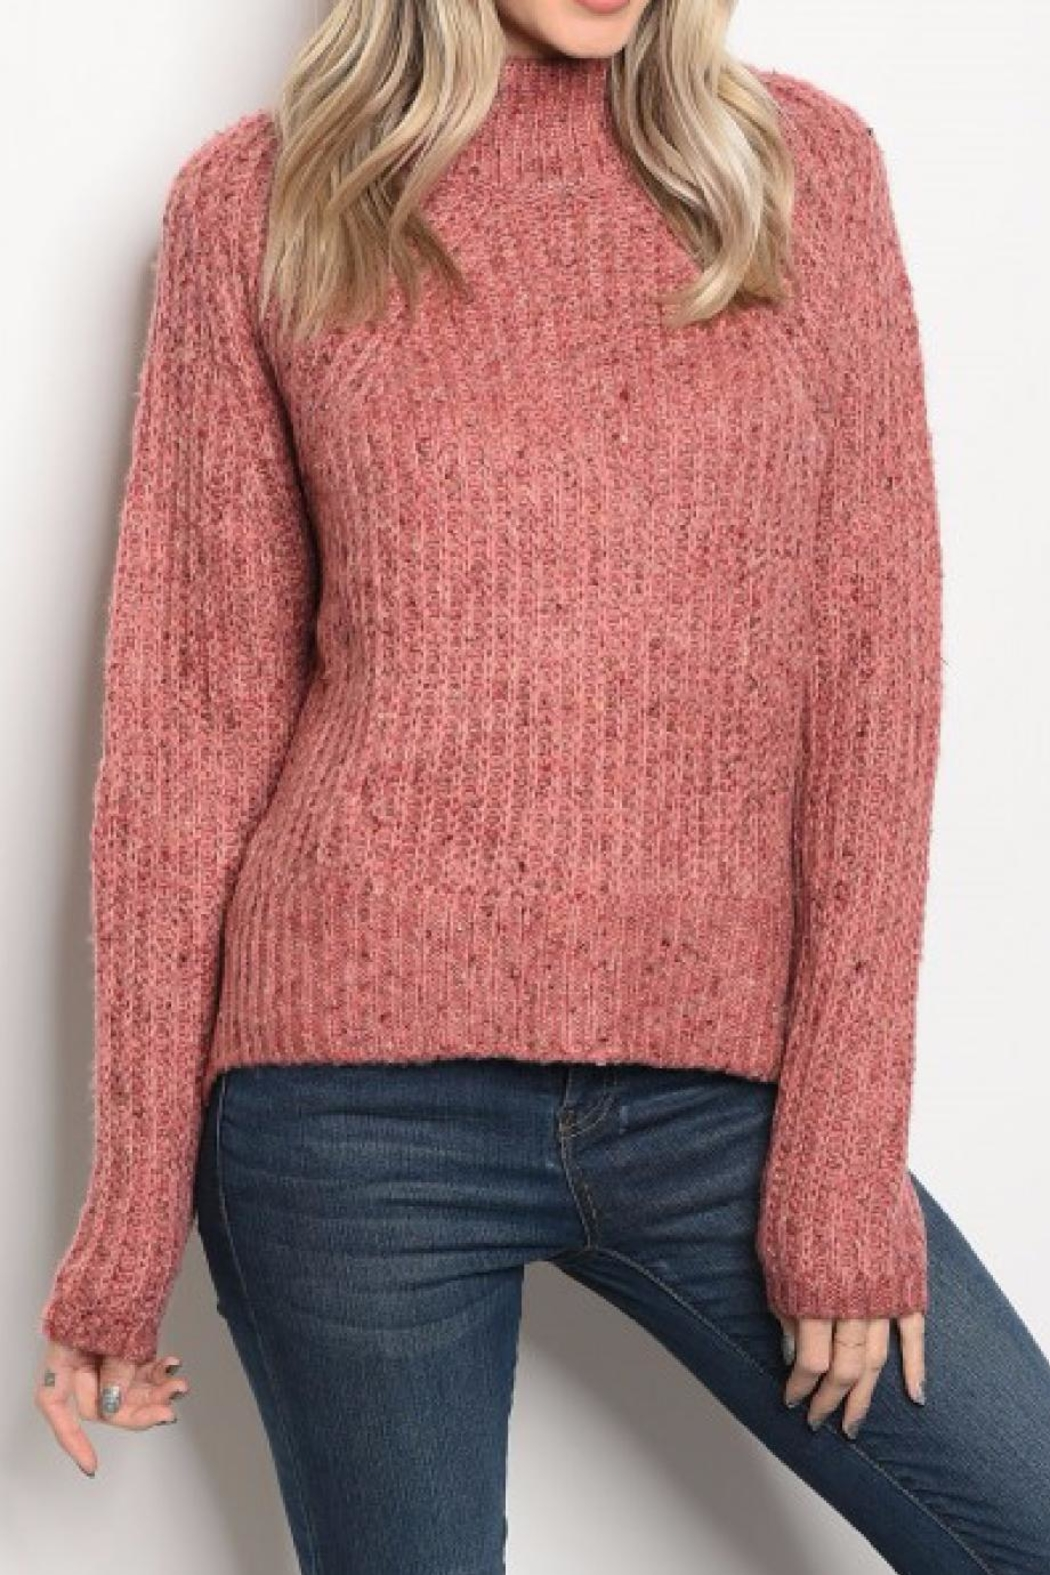 LoveRiche Chunky Sweater from Texas by Abby Lane Home Decor ...